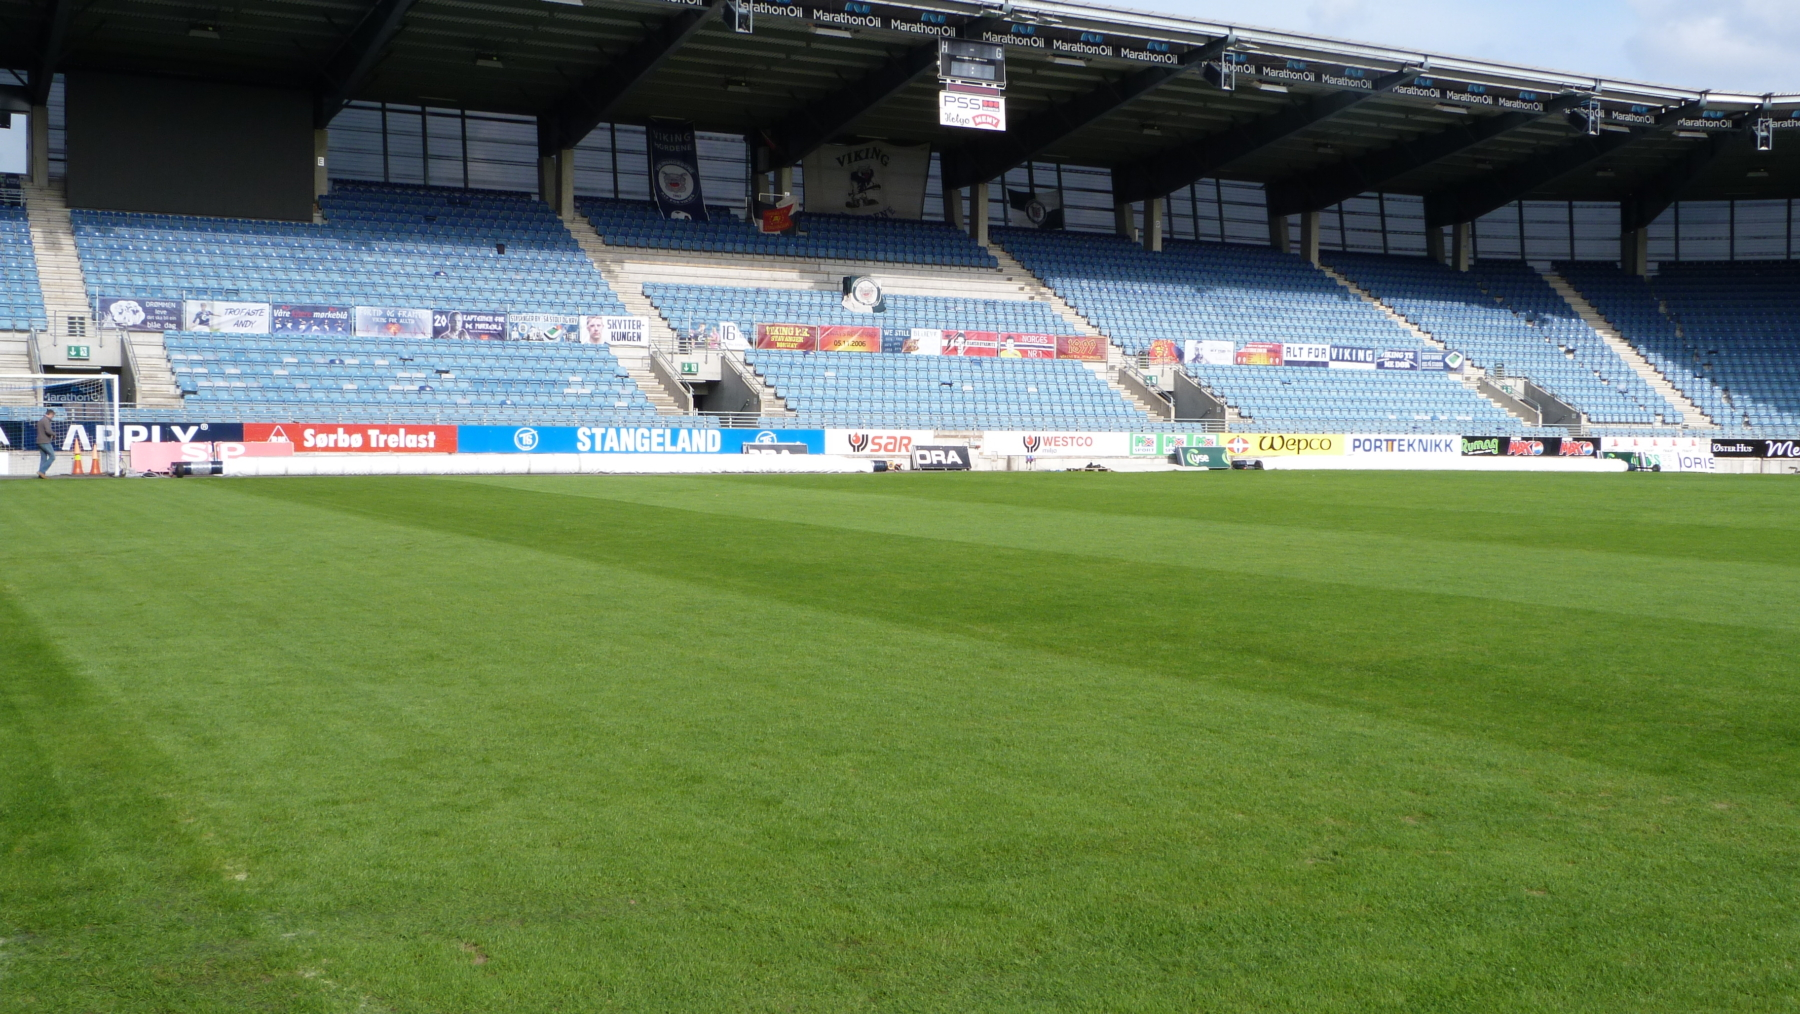 FK Viking pitch Ready for match day - Matchsaver